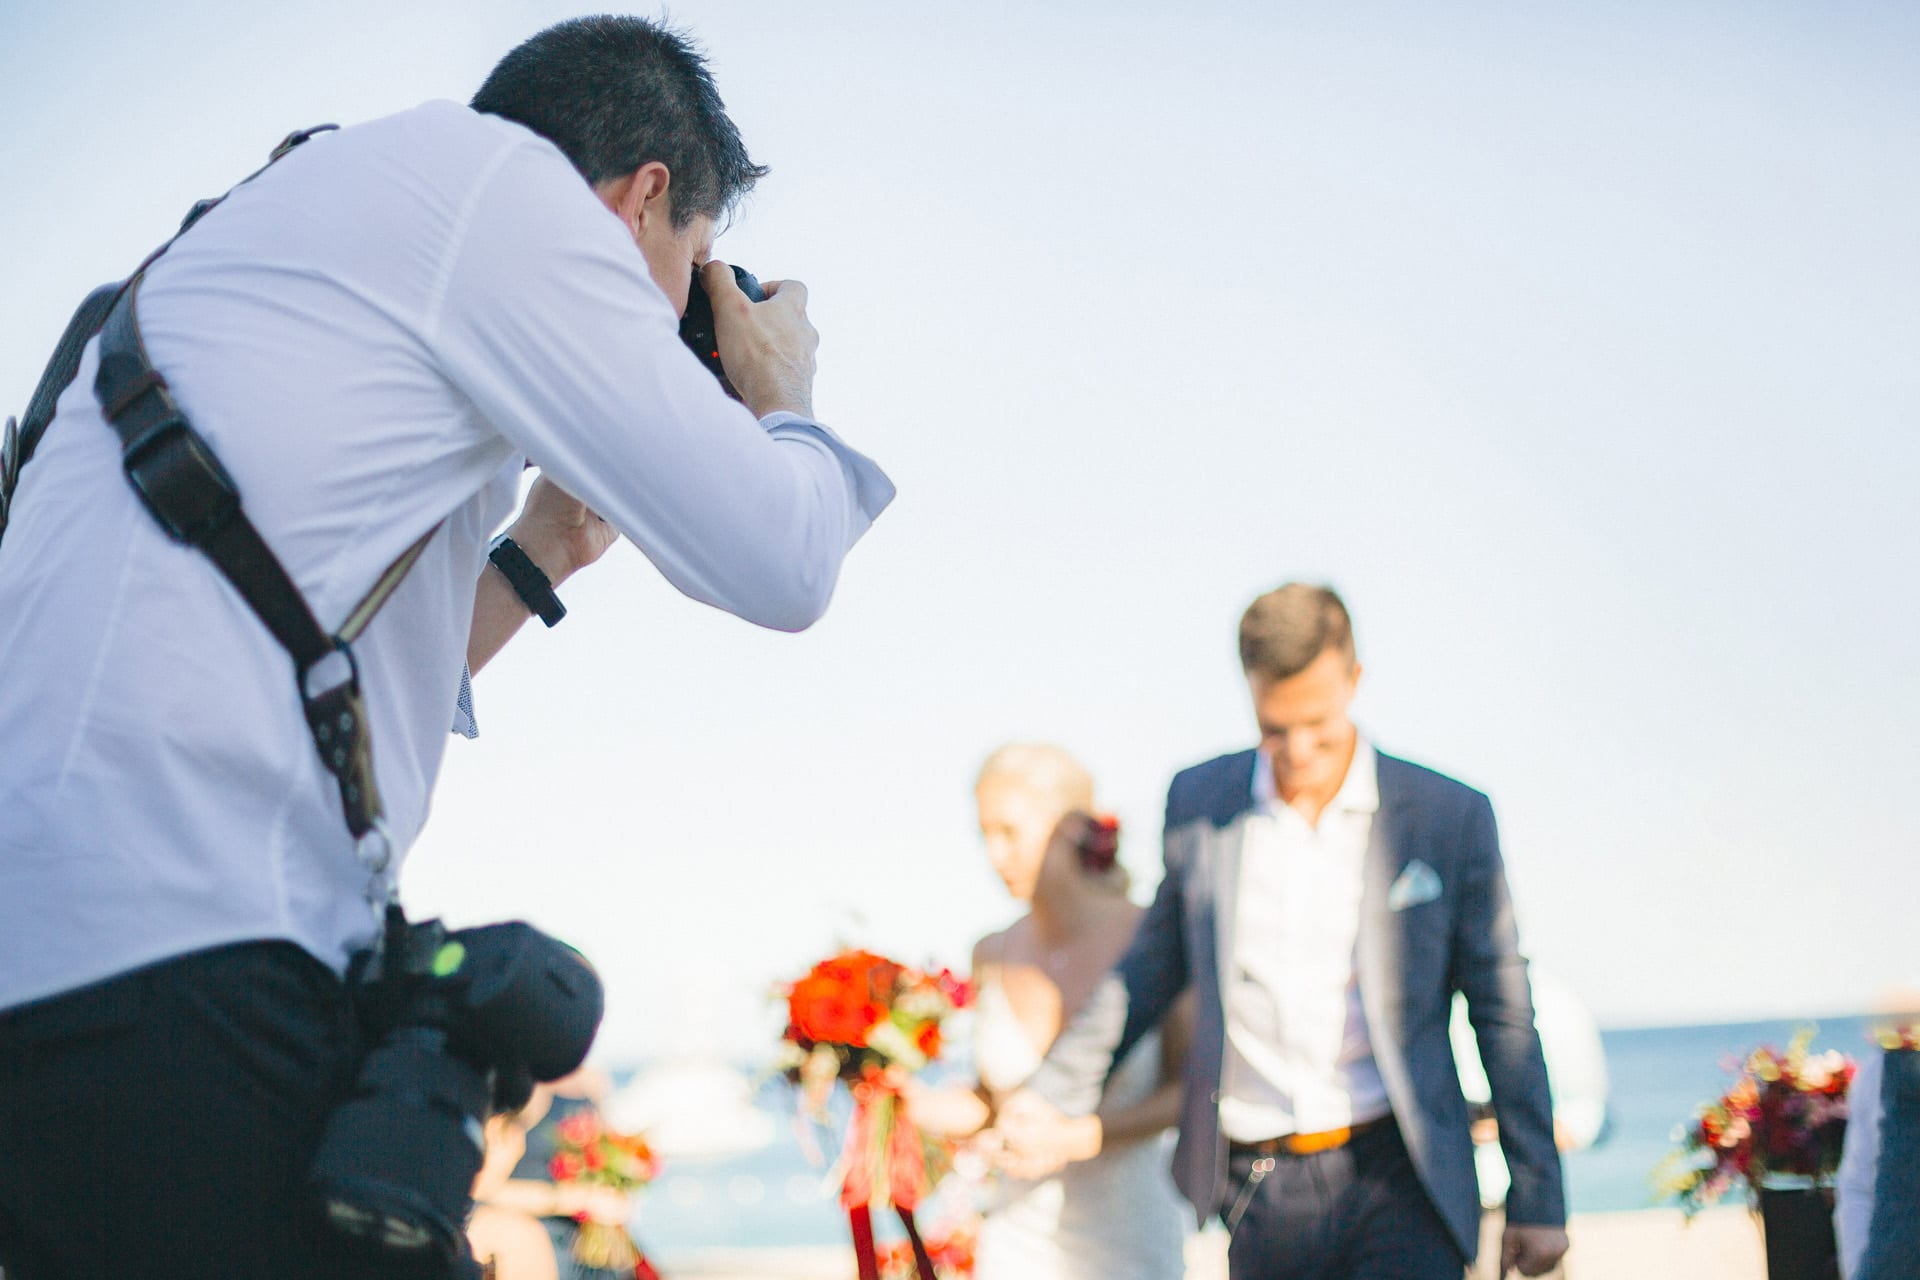 Local wedding photographer Dino Gomez photographing a couple